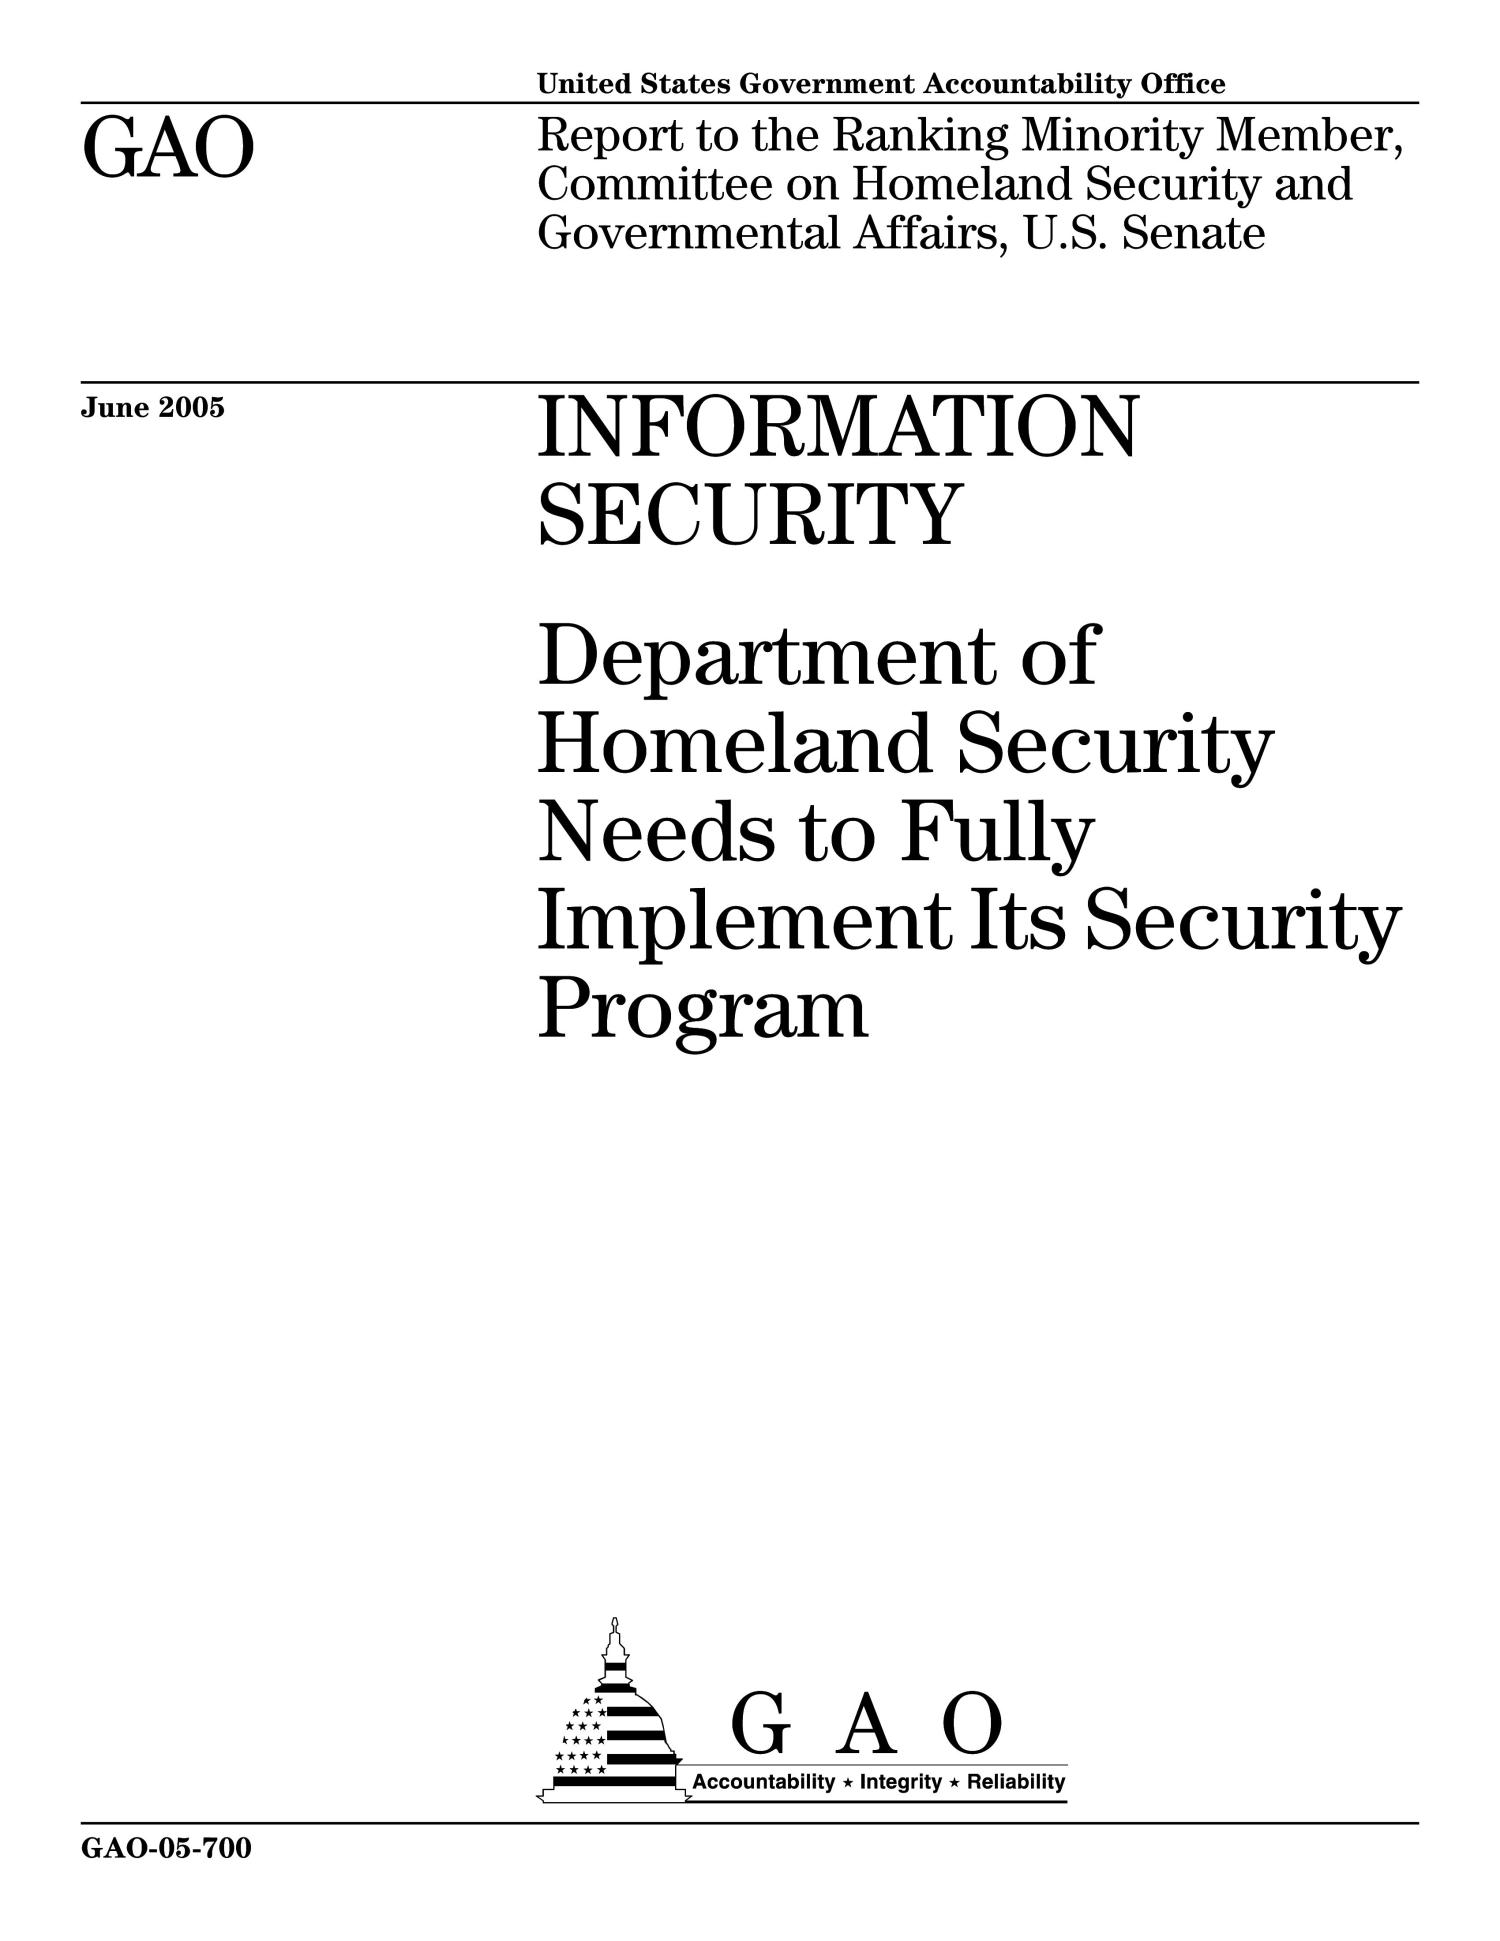 Information Security: Department of Homeland Security Needs to Fully Implement Its Security Program                                                                                                      [Sequence #]: 1 of 36